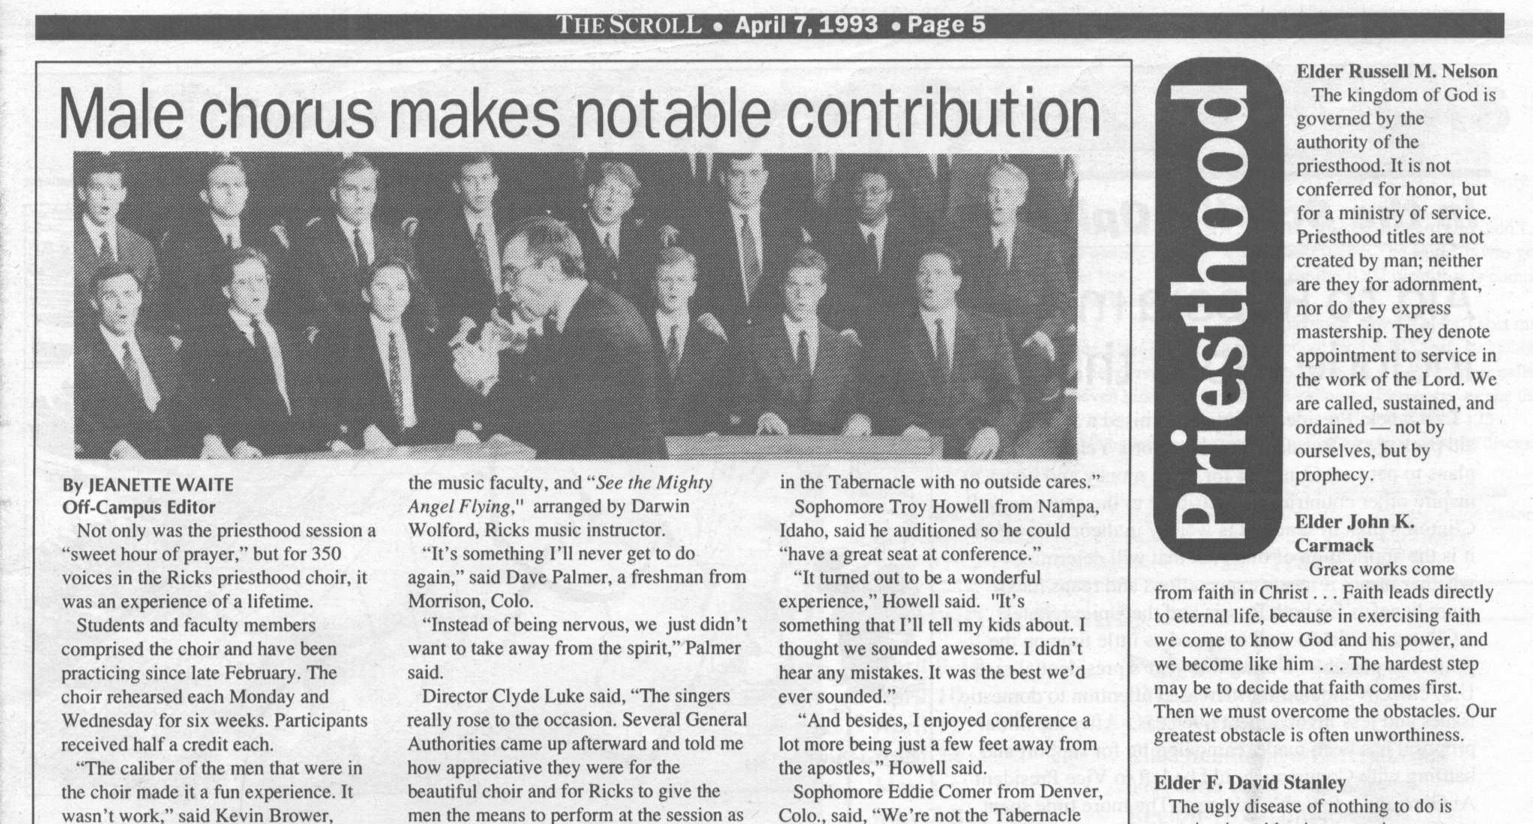 Jeanette Bennett (who went by Jeanette Waite at the time) led an all-female staff of writers at The Scroll, which is the student newspaper at Ricks College (now BYU-Idaho). She  wrote about the Ricks College Men's Choir performing in the Priesthood Session of April 1993.